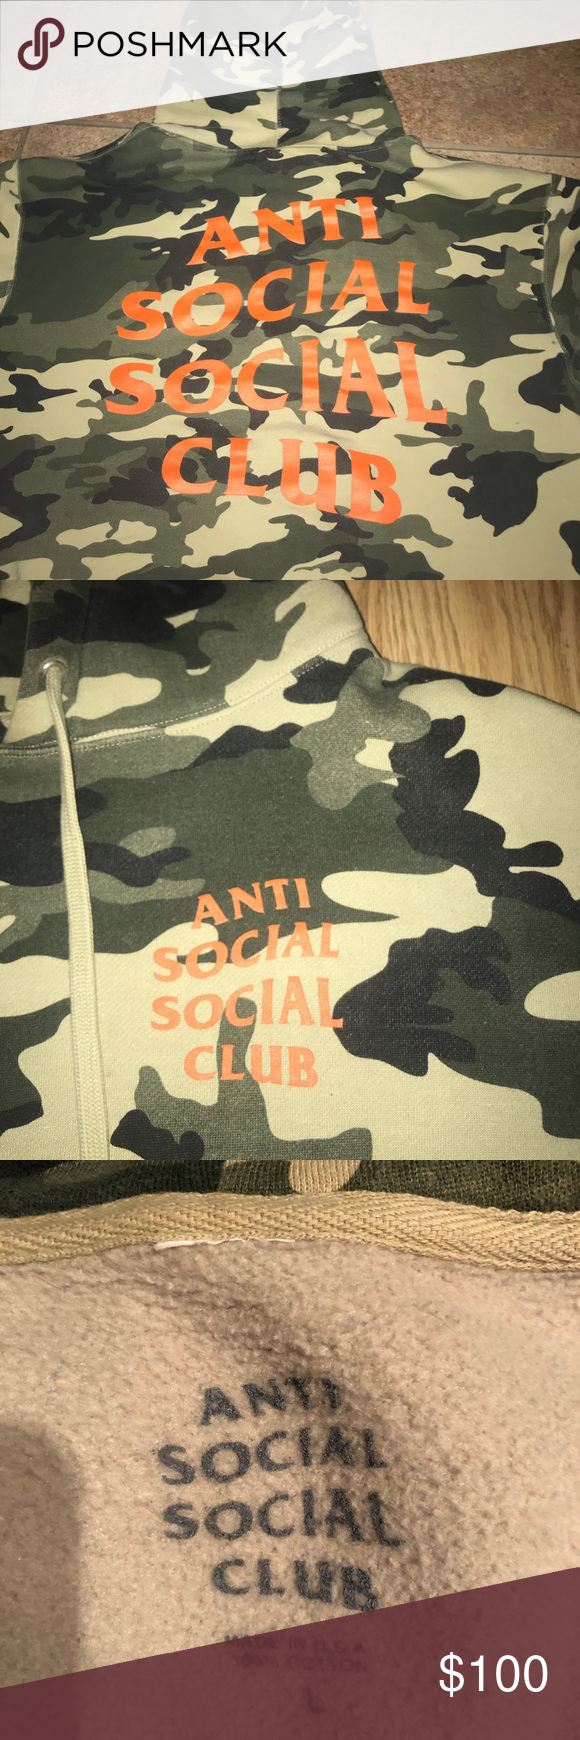 2d04ec746bef Anti Social Social Club Sixth St Hoodie It s a size large but could fit a  medium Need gone ASAP trading and offers are allowed Anti Social Social Club  Other